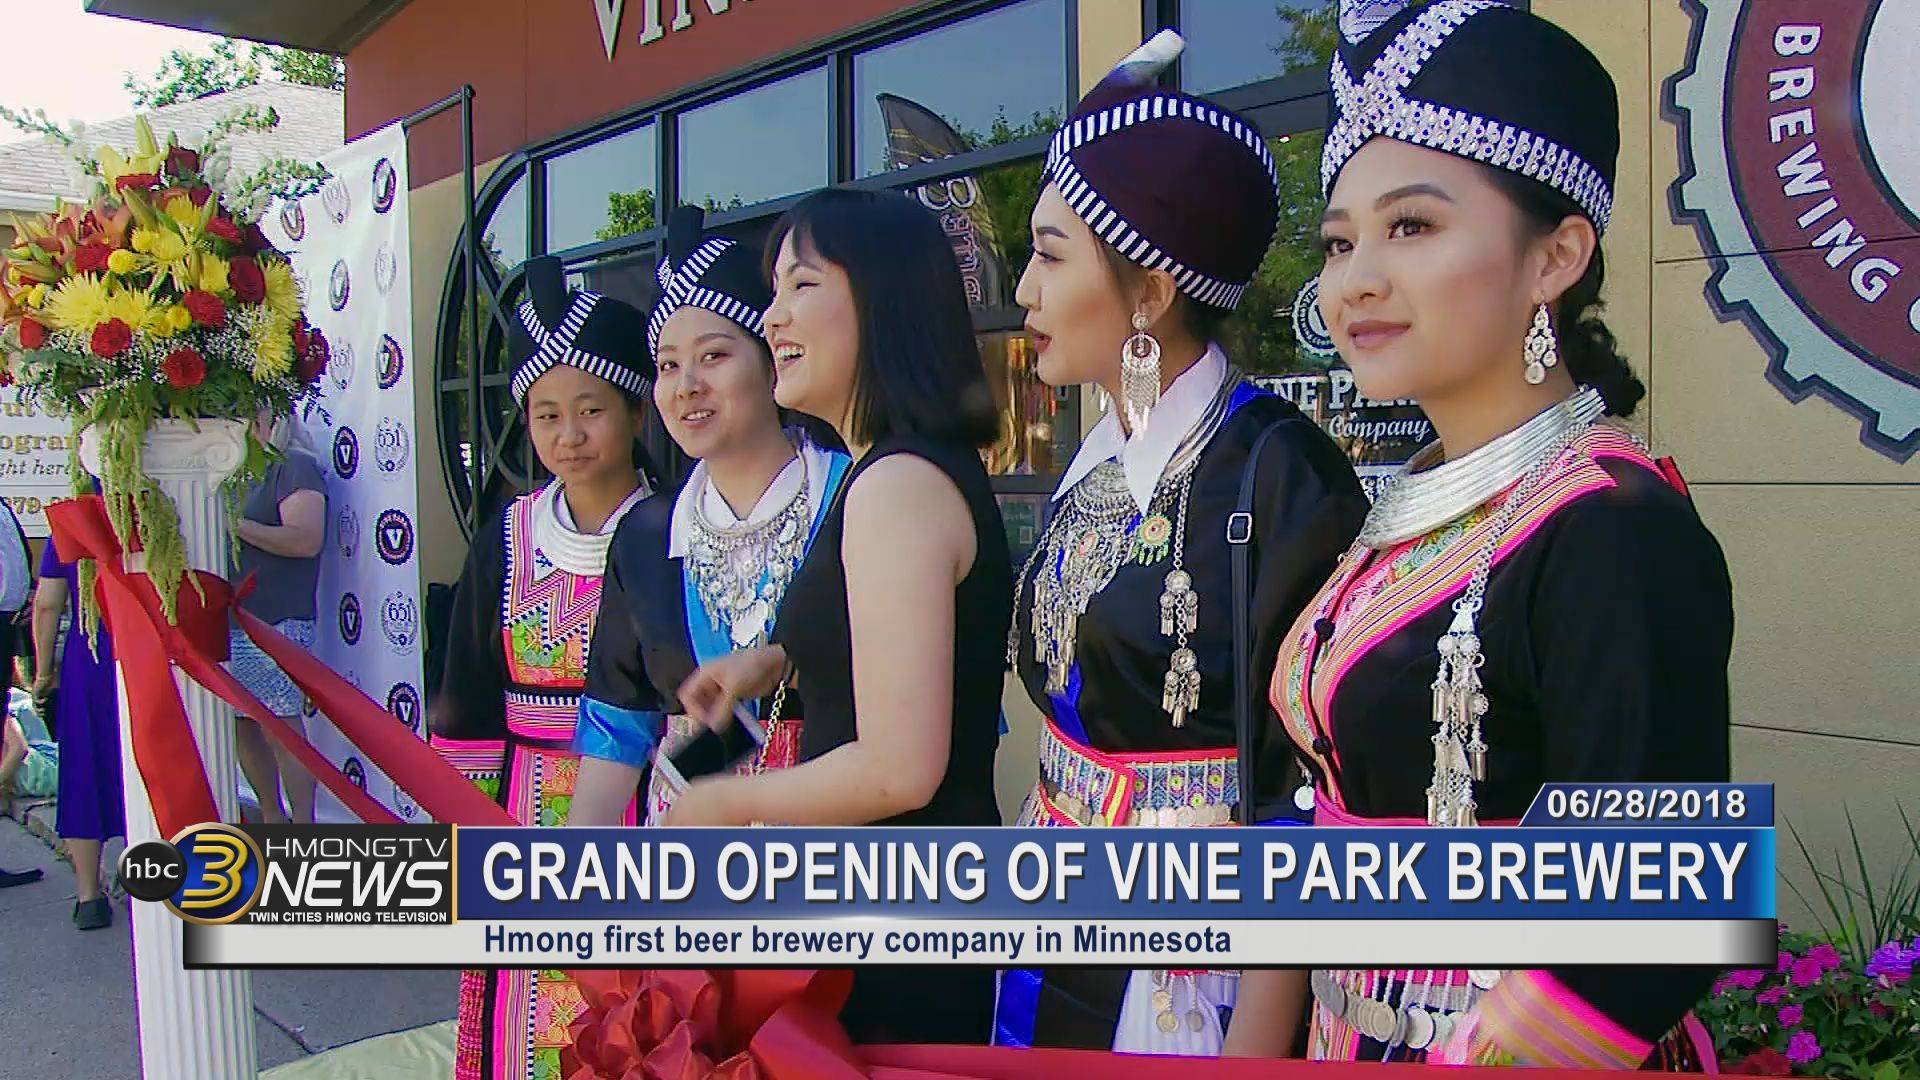 Grand opening of Vine Park Brewery, first Hmong beer brewing company in Minnesota